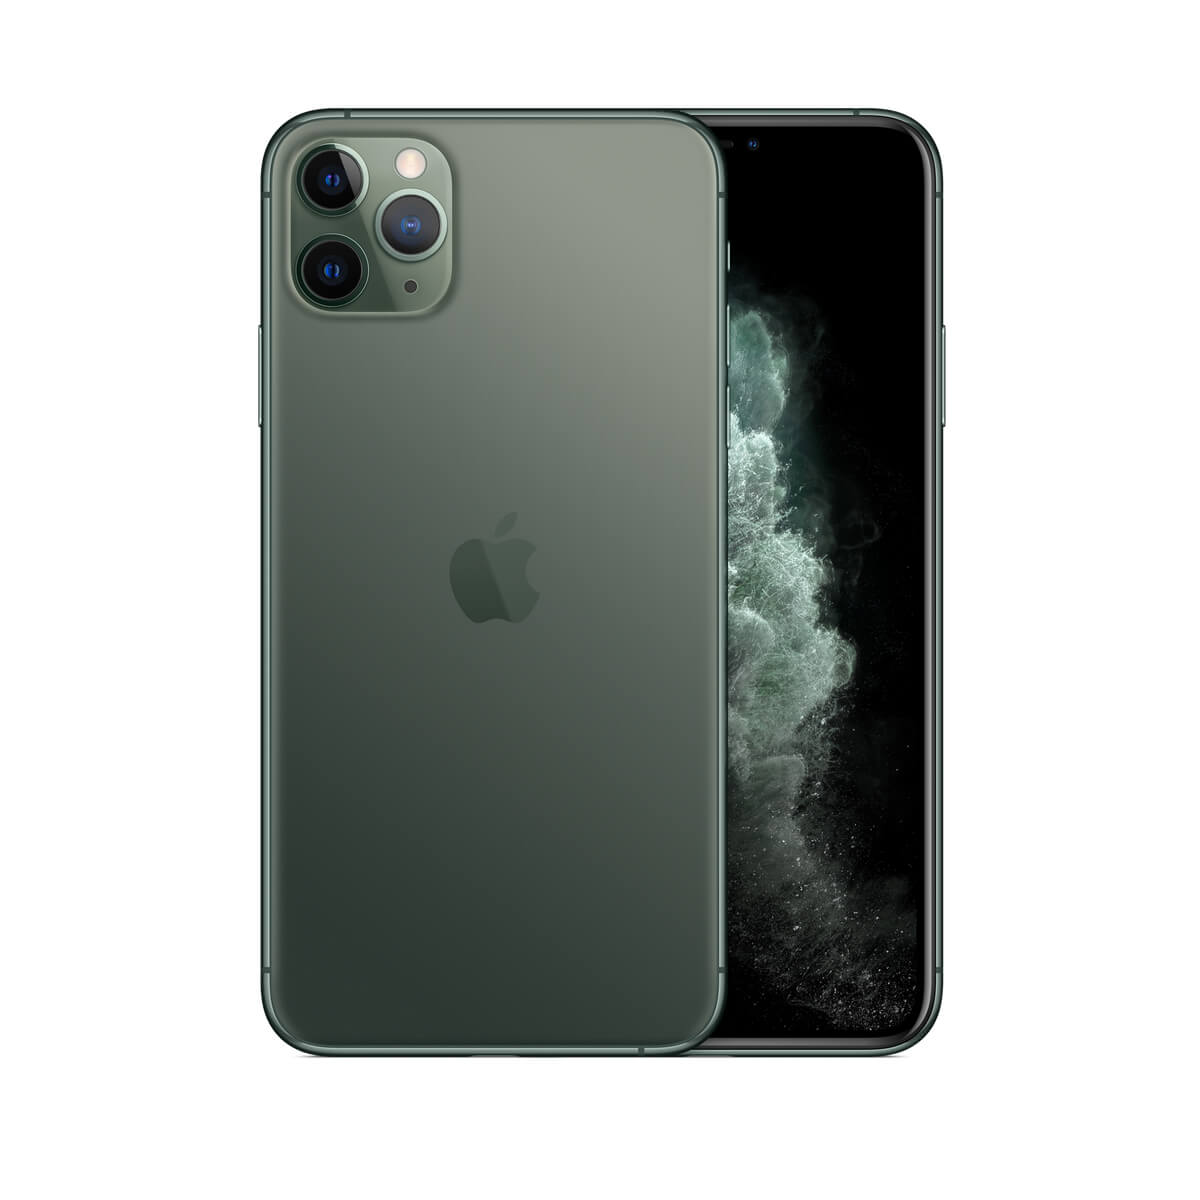 Apple iPhone 11 Pro Max (64G) [灰/金]